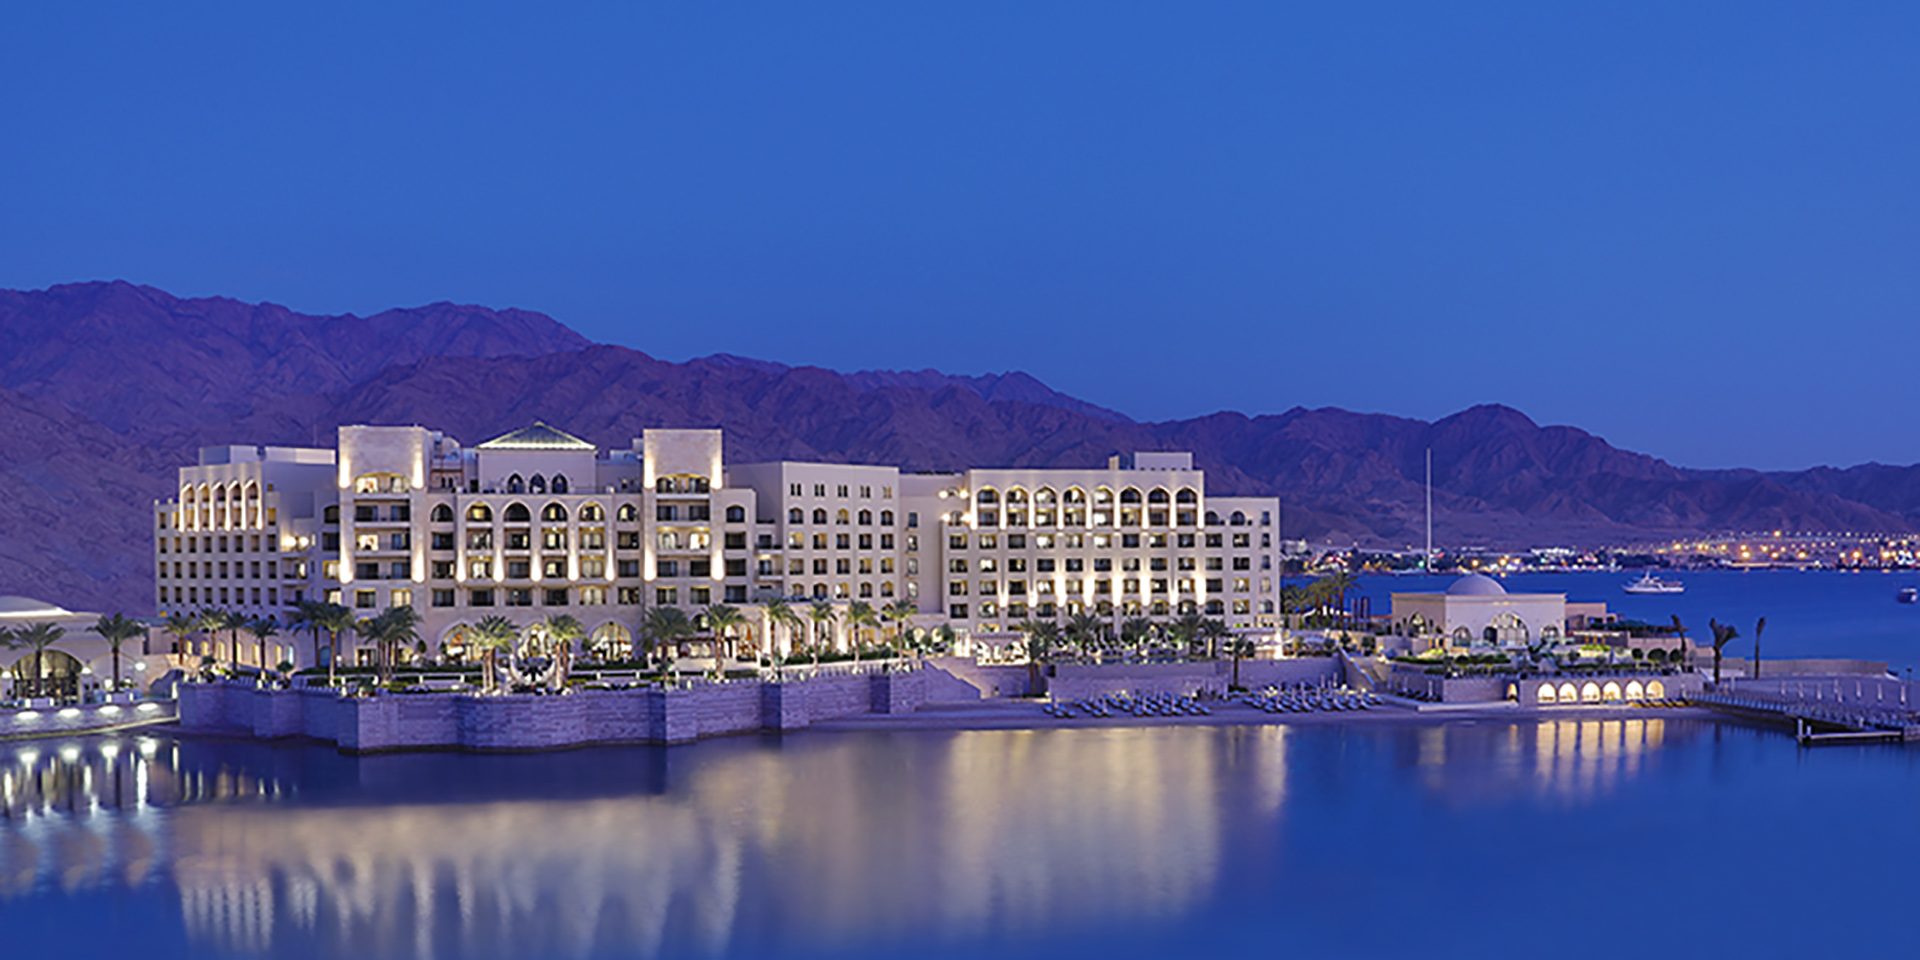 Al Manara, A Luxury Collection Hotel, Saraya Aqaba Reflects The Architecture, Philosophy And Beauty Of Jordan As A Destination.